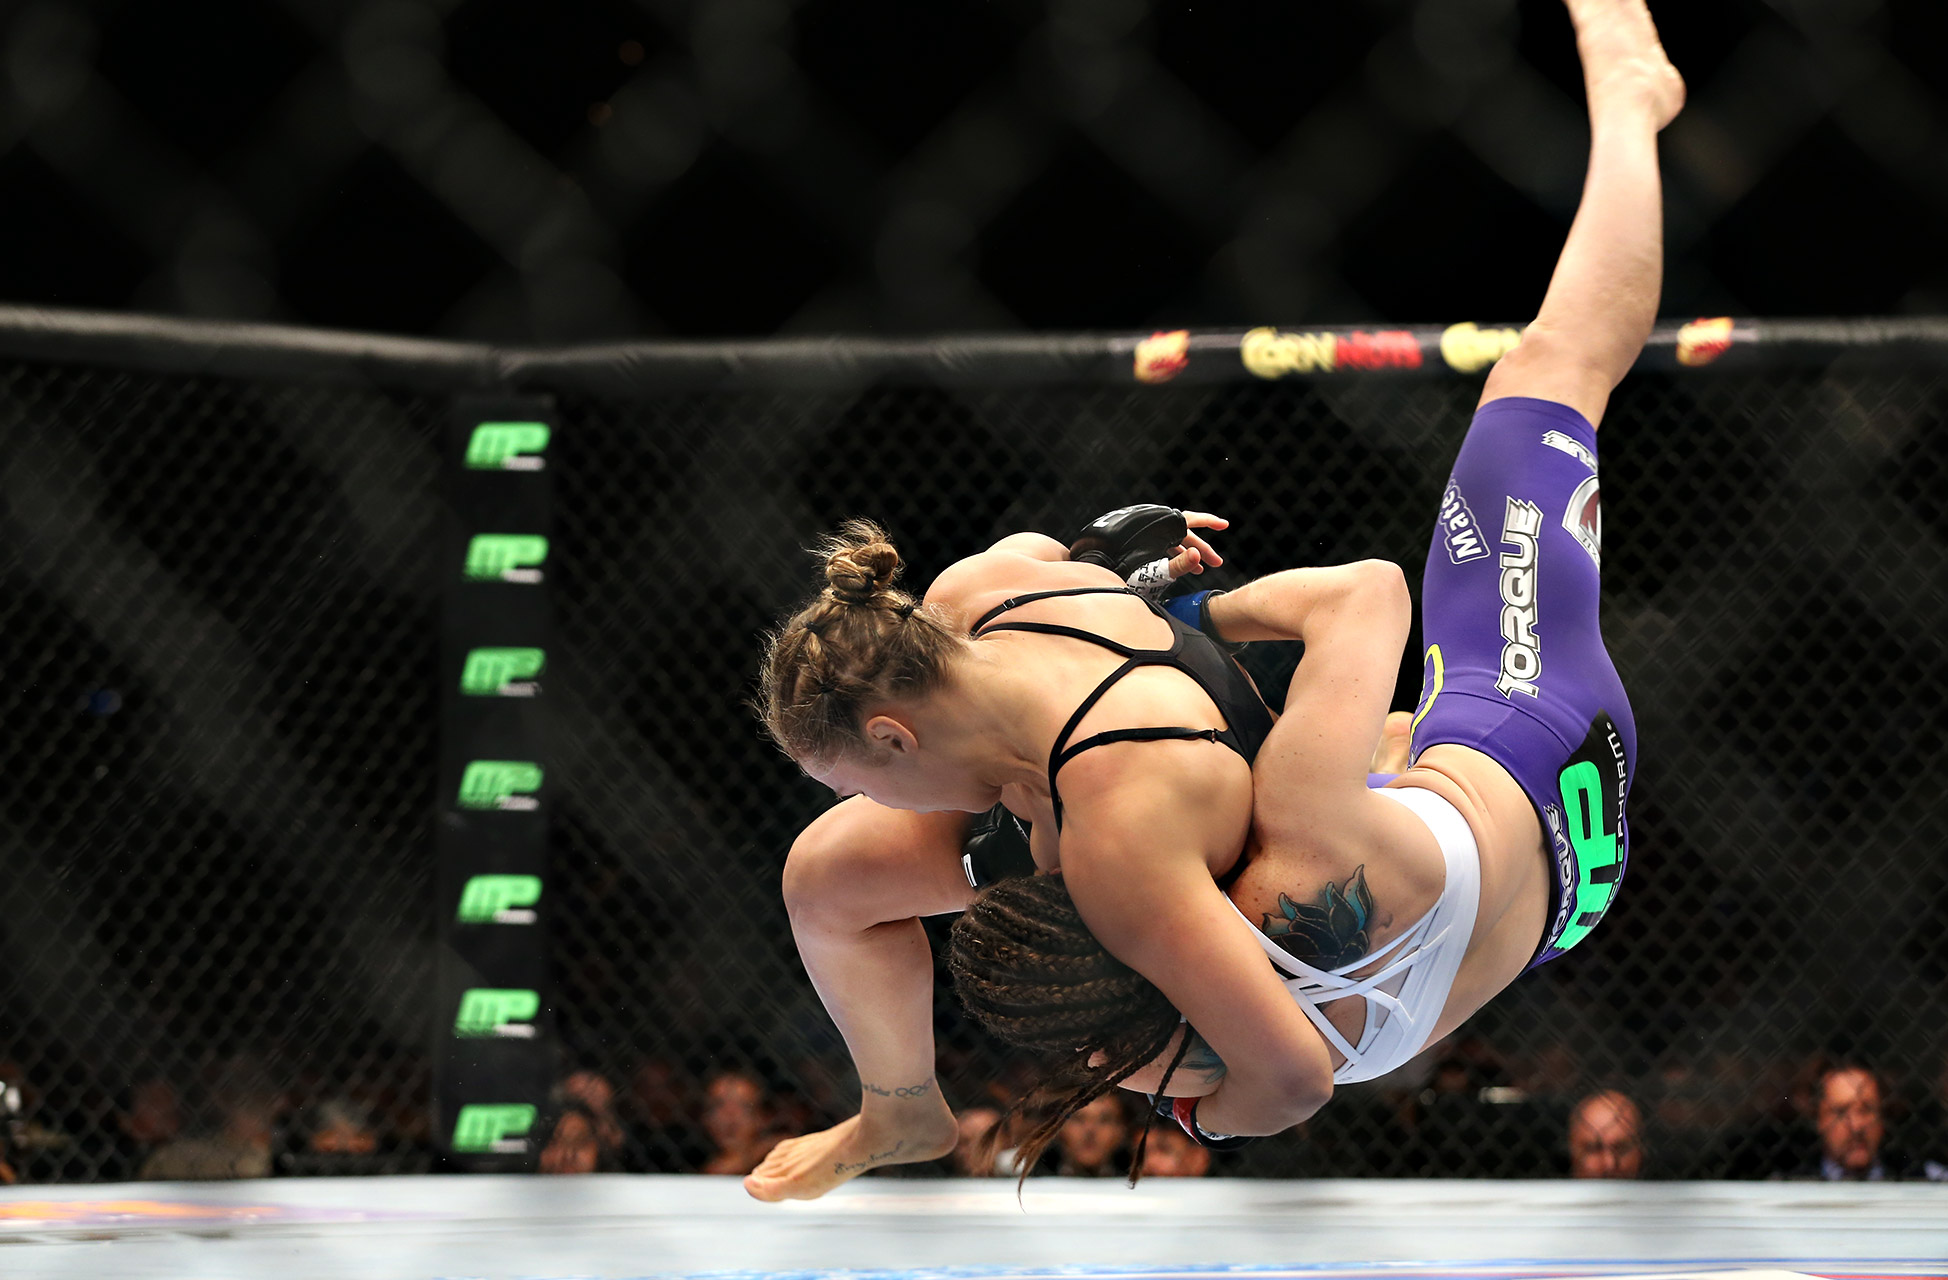 Ronda Rousey takes down Alexis Davis during their co-feature bout at UFC 175. Rousey (10-0) finished her second consecutive fight via knockout, needing only 16 seconds to put away Davis.